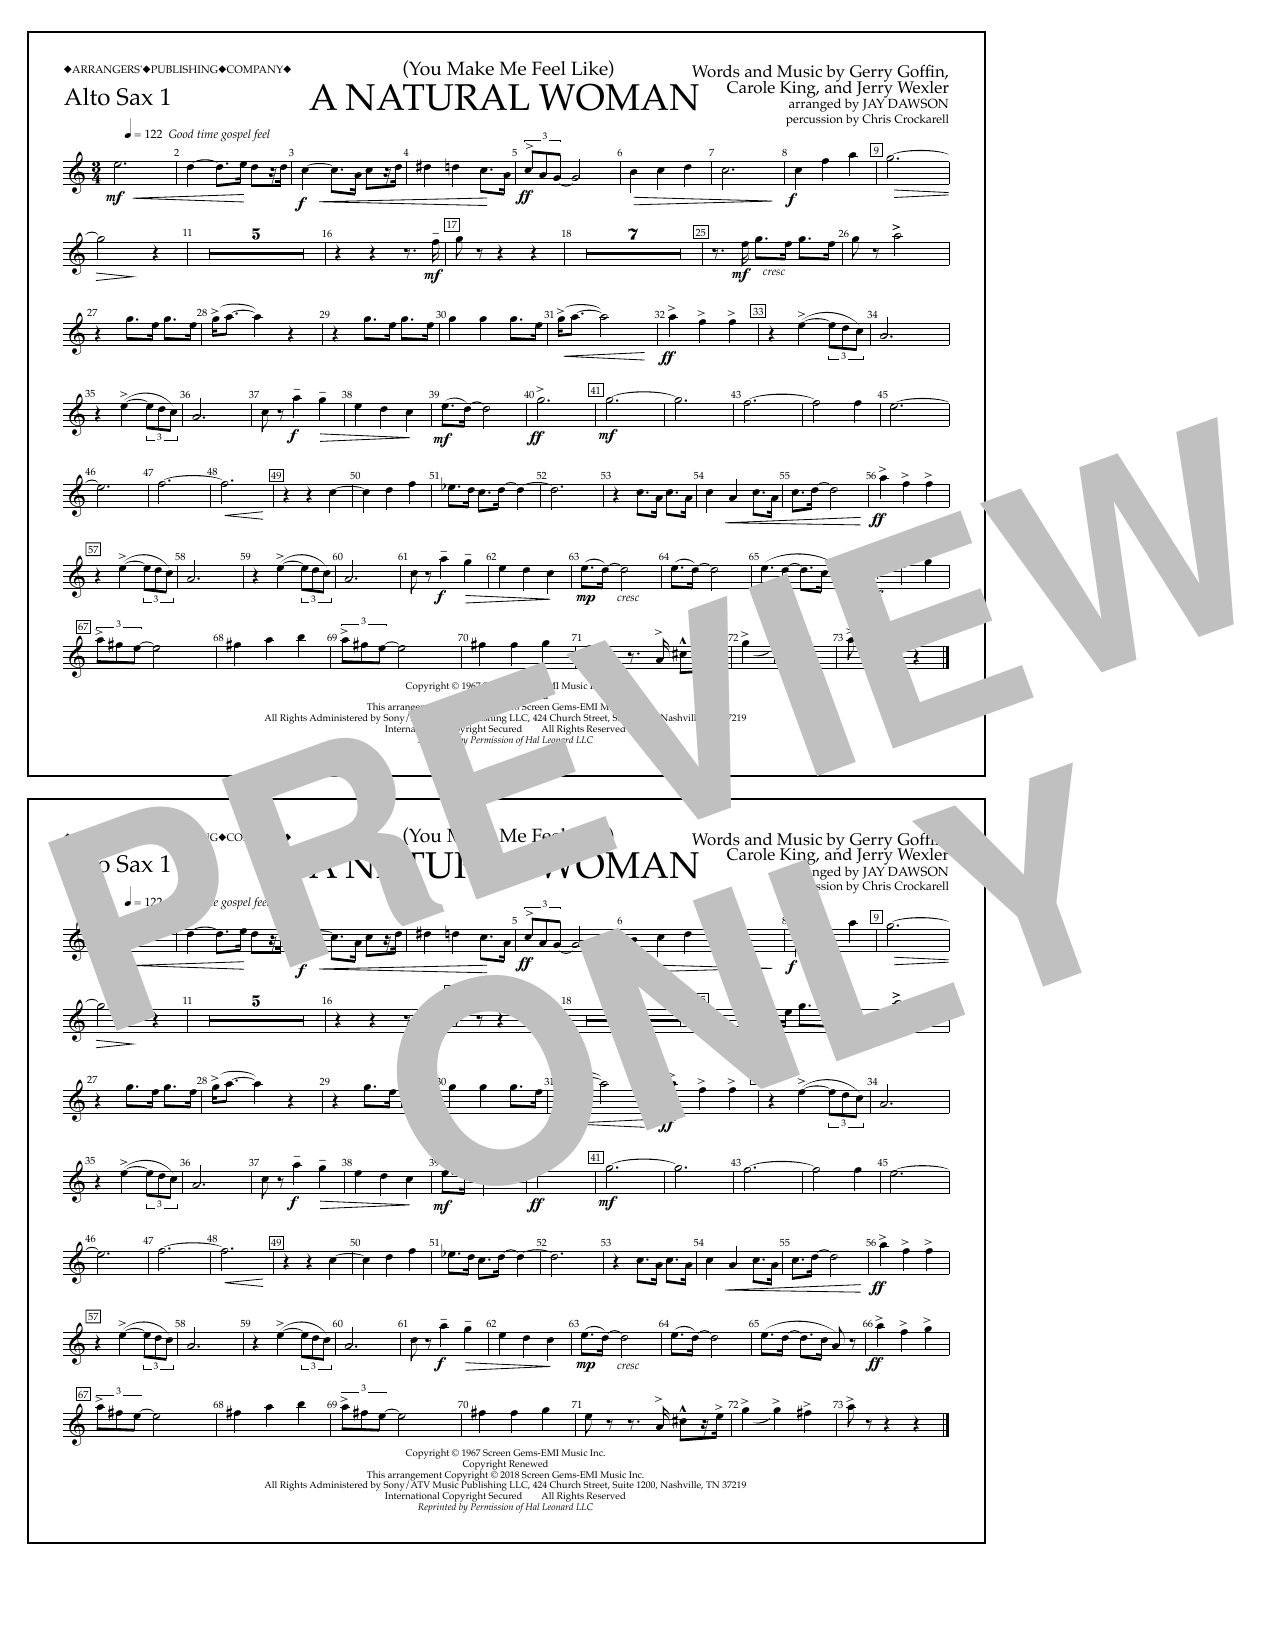 Download Aretha Franklin '(You Make Me Feel Like) A Natural Woman (arr. Jay Dawson) - Alto Sax 1' Digital Sheet Music Notes & Chords and start playing in minutes